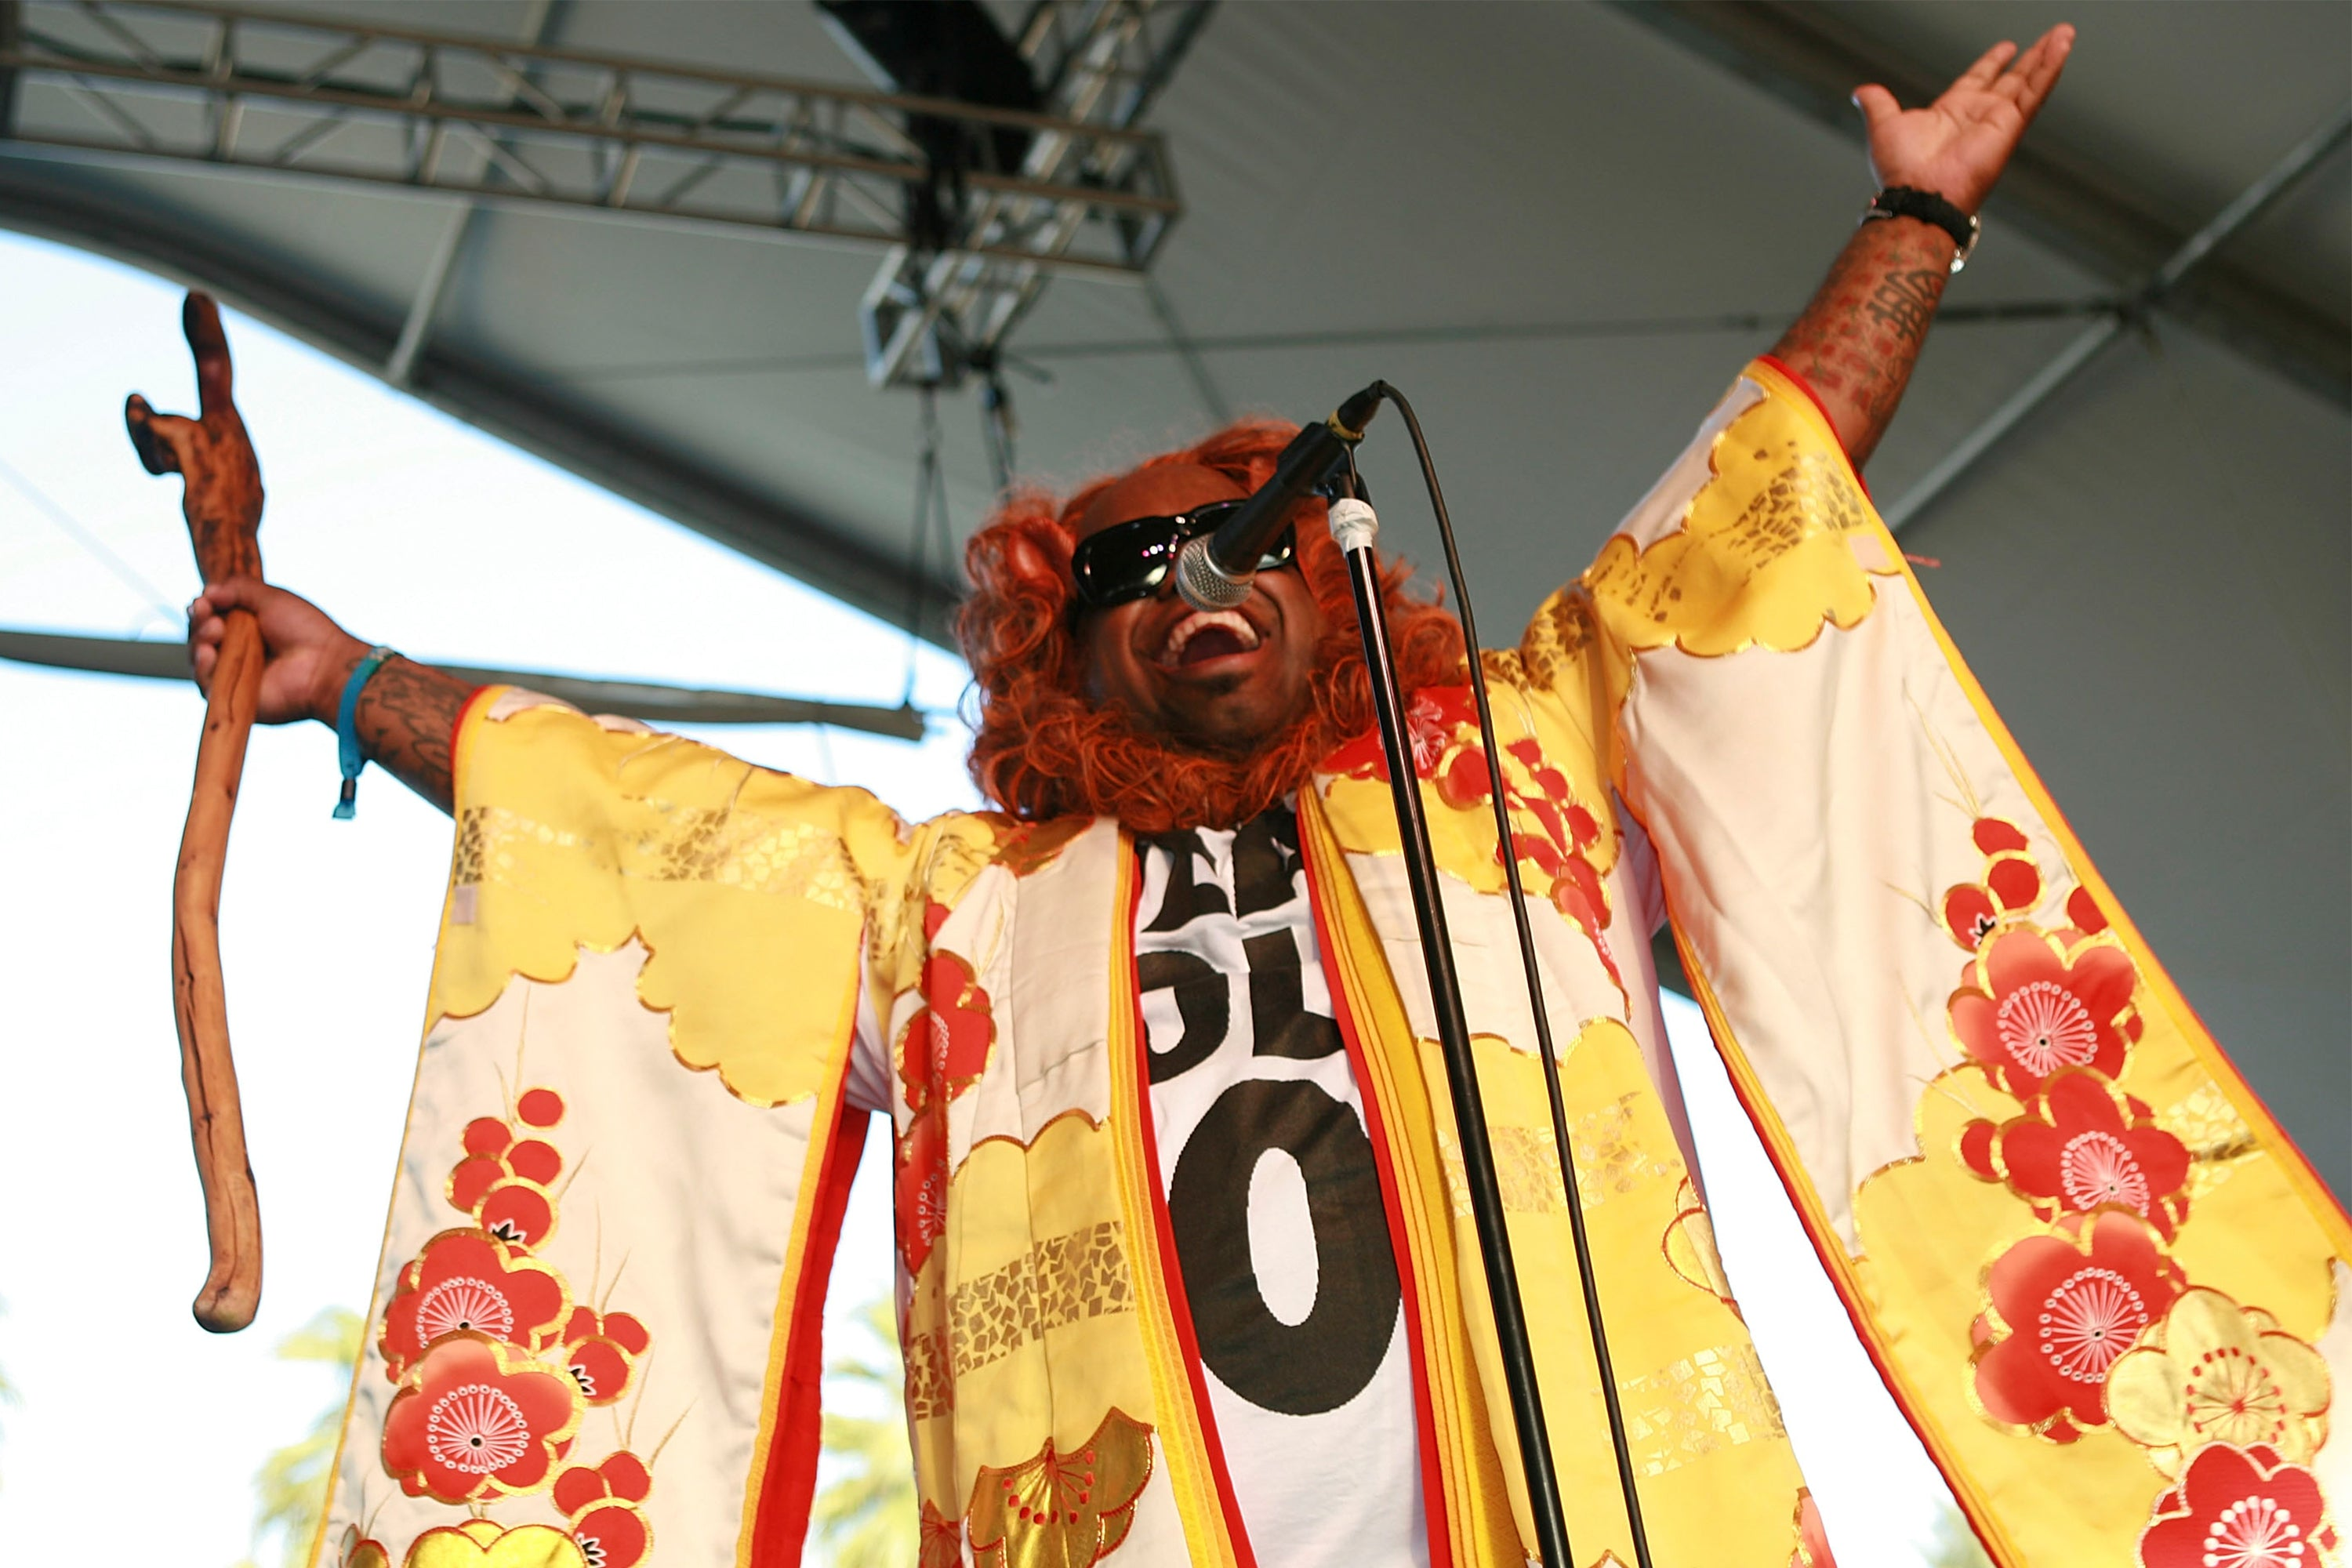 Gnarls Barkley performing at the 2006 Coachella Valley Music Festival April 30, 2006 in Indio, California. (Photo by Bob Berg/Getty Images)